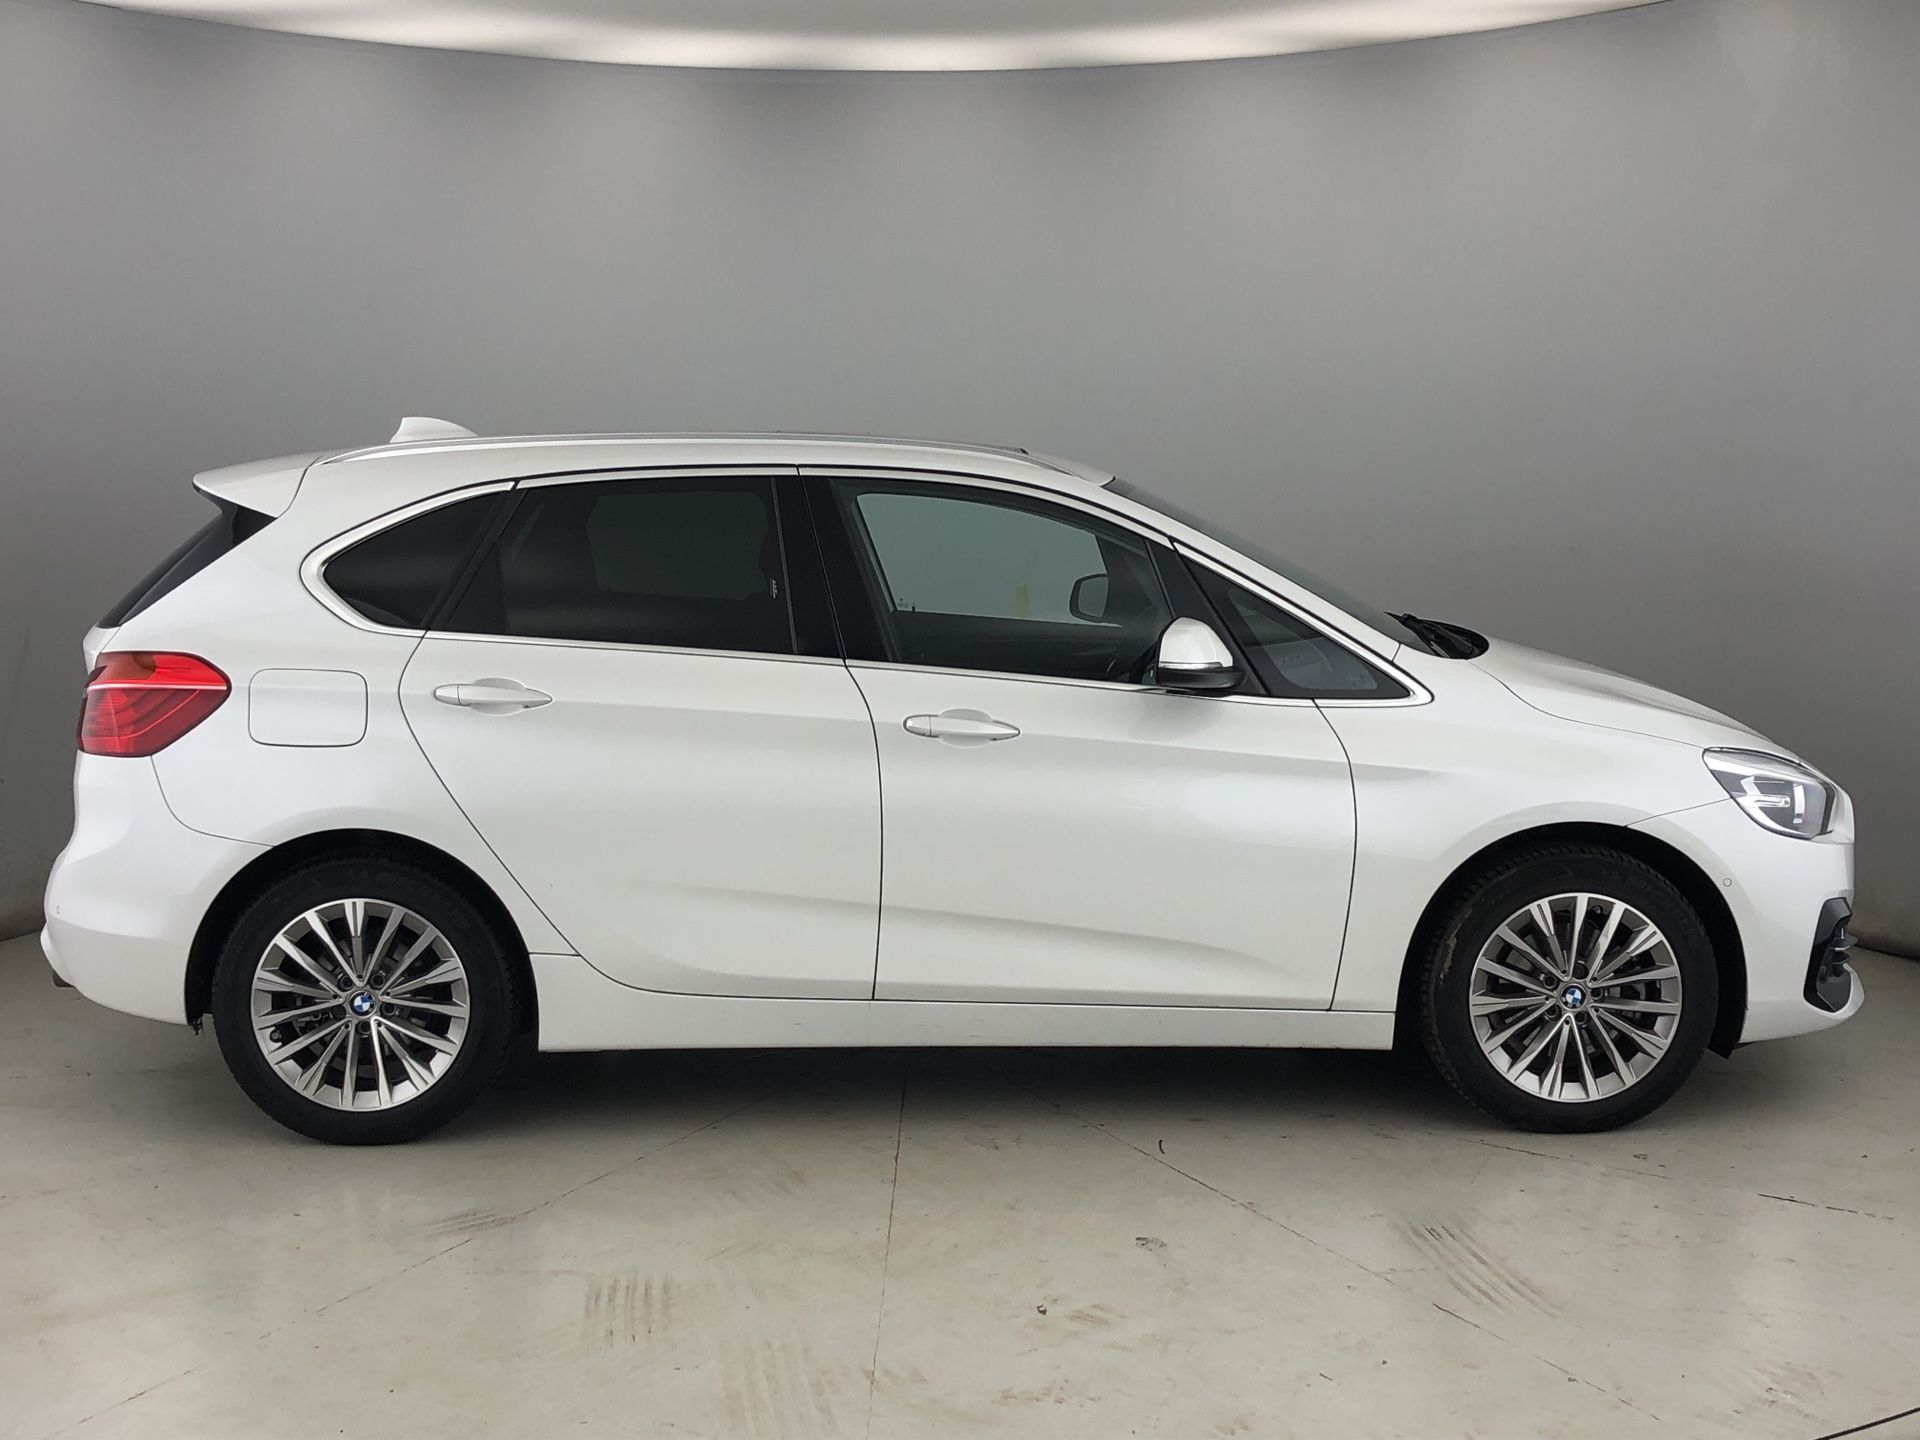 Image 3 - BMW 220d xDrive Luxury Active Tourer (YF19HWS)